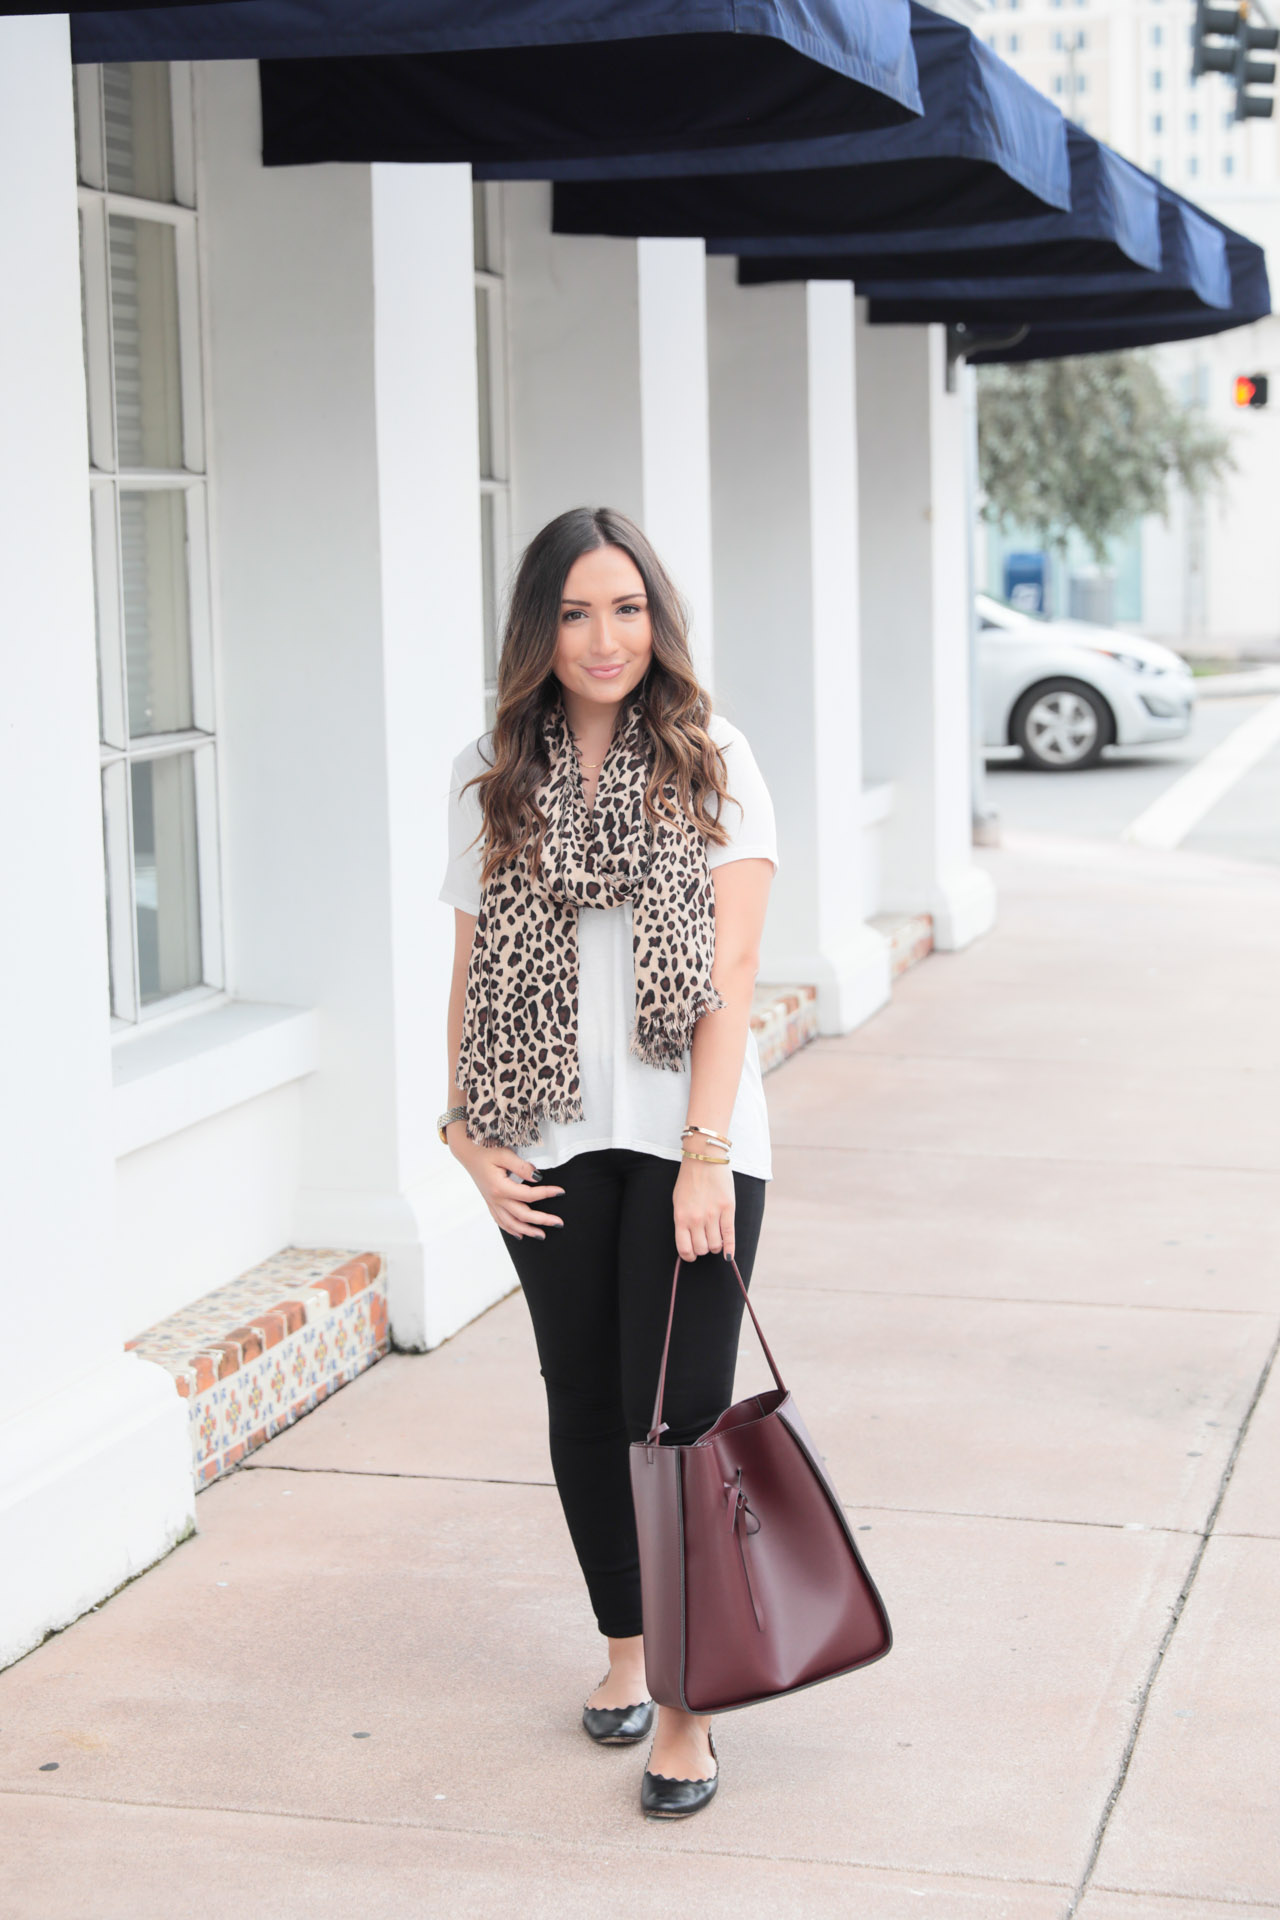 Leopard scarf and oxblood accessories